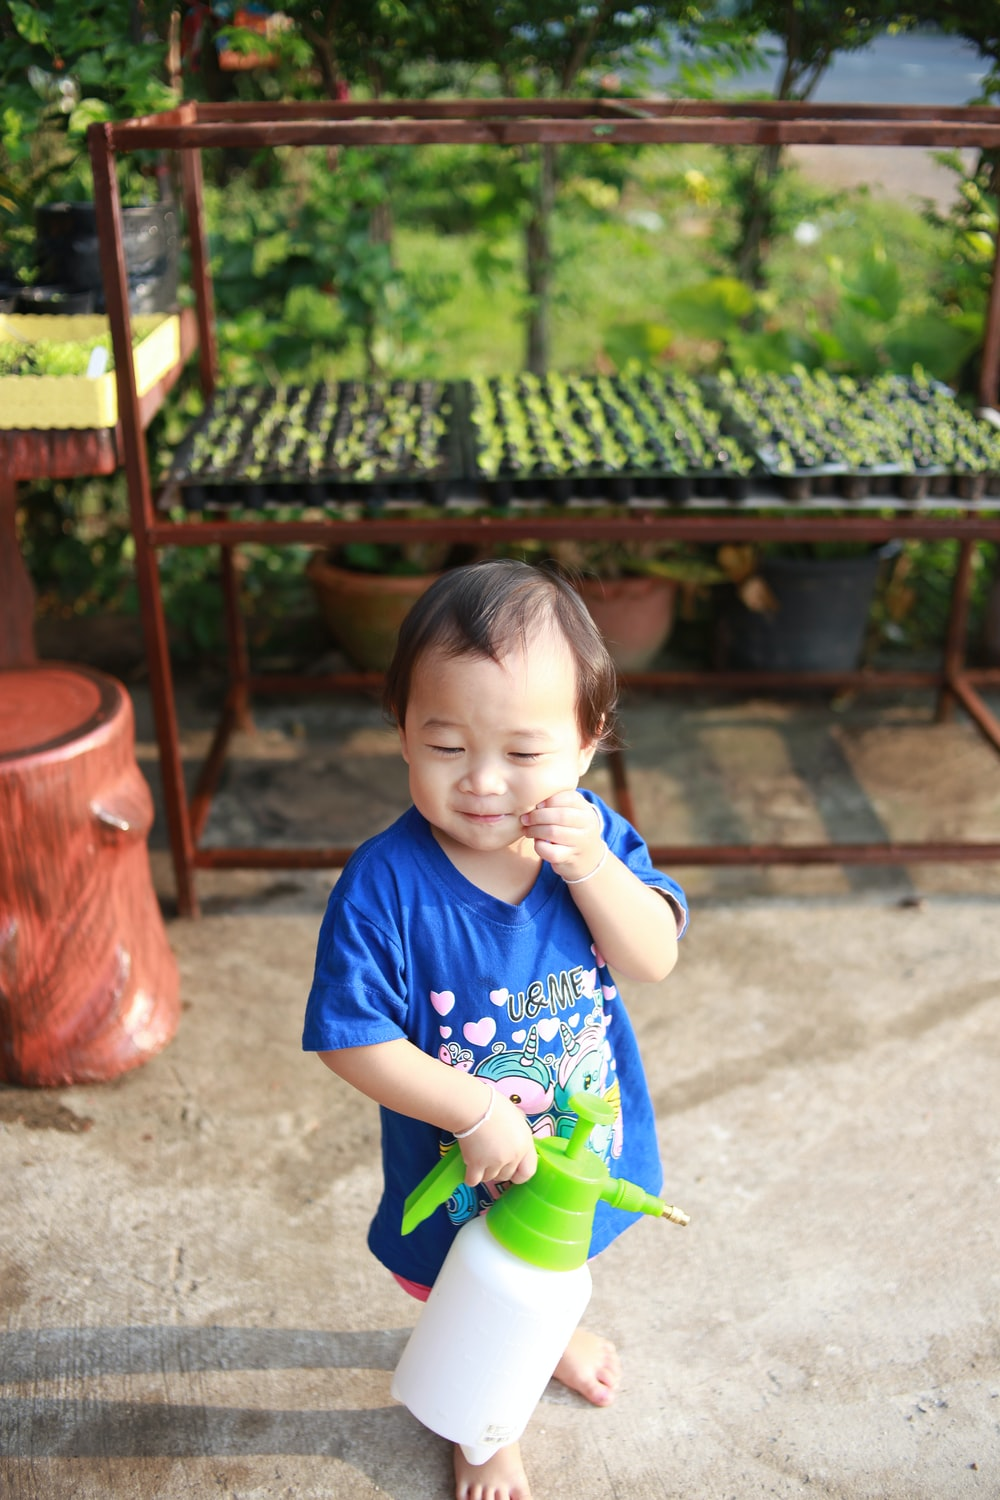 girl in blue crew neck t-shirt holding green plastic toy